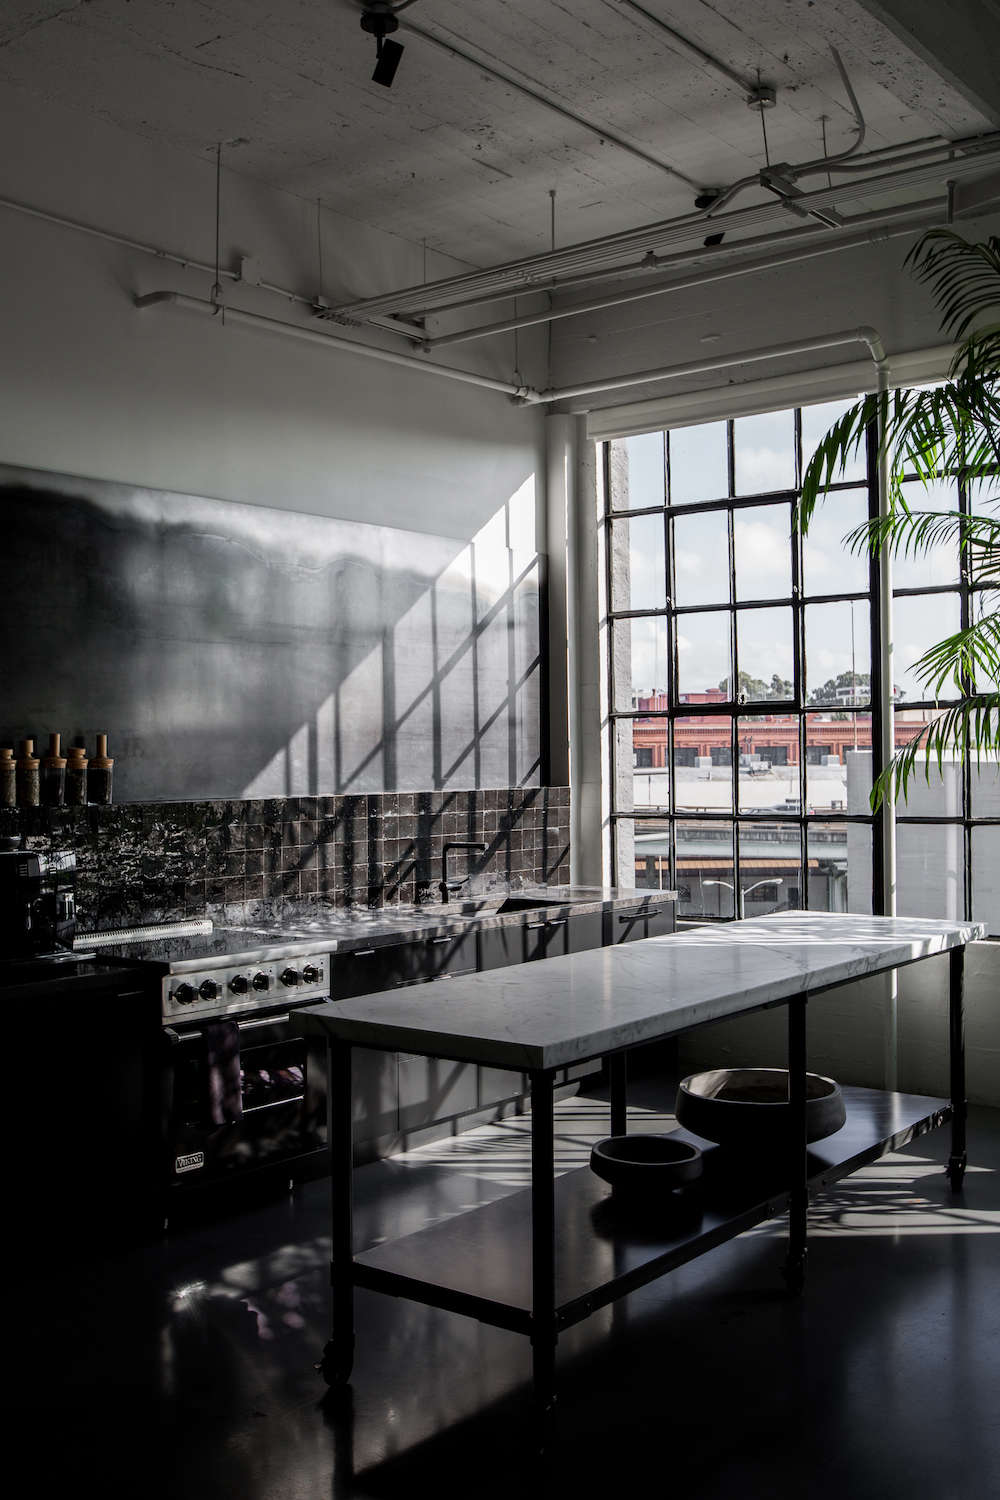 Black Industrial Kitchen in San Francisco